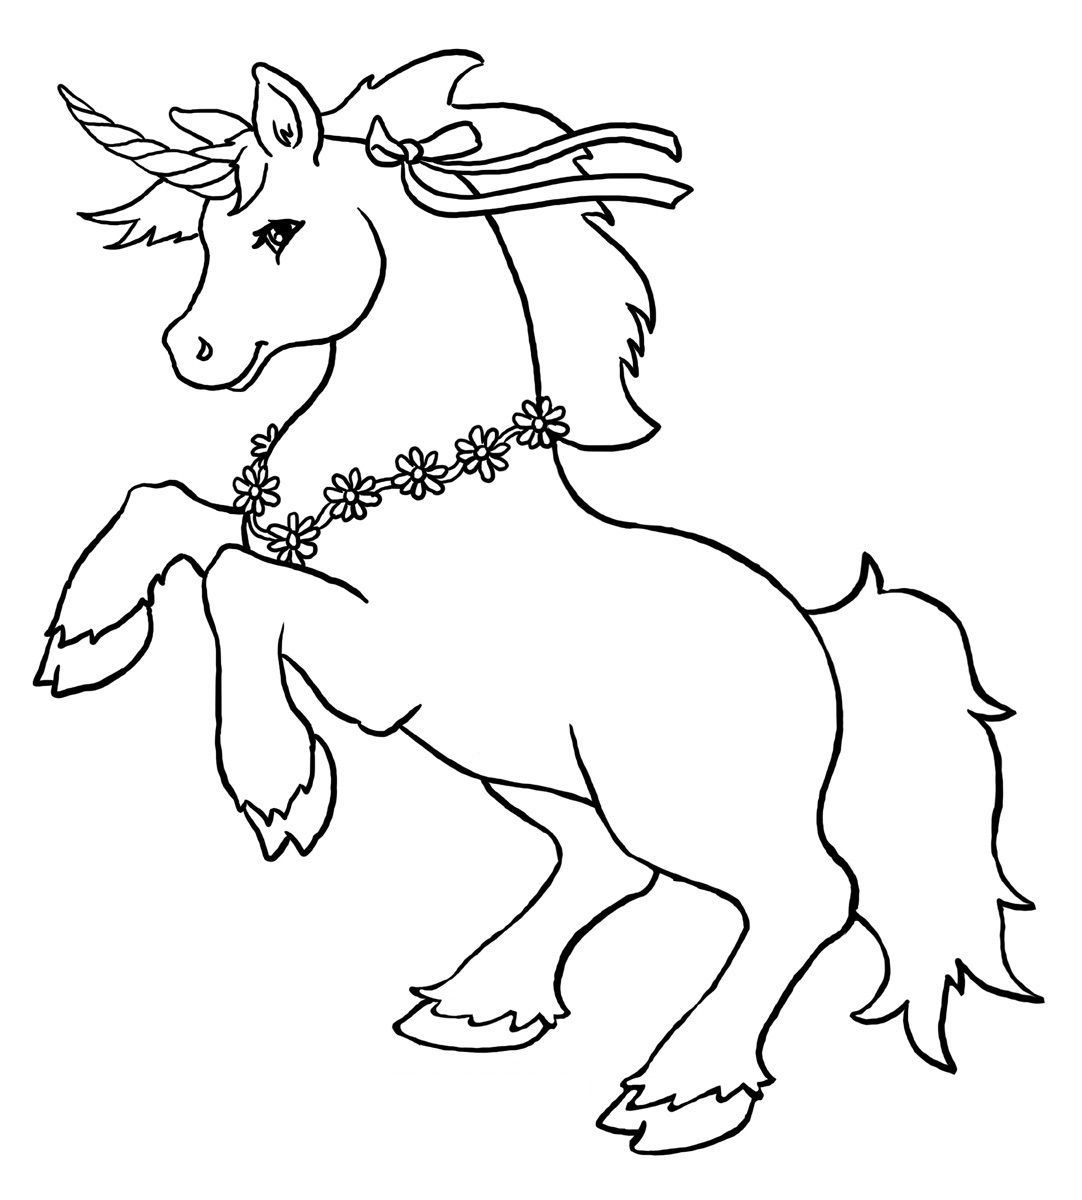 Zizzle Zazzle Lineart By Yampuff On Deviantart Unicorn Coloring